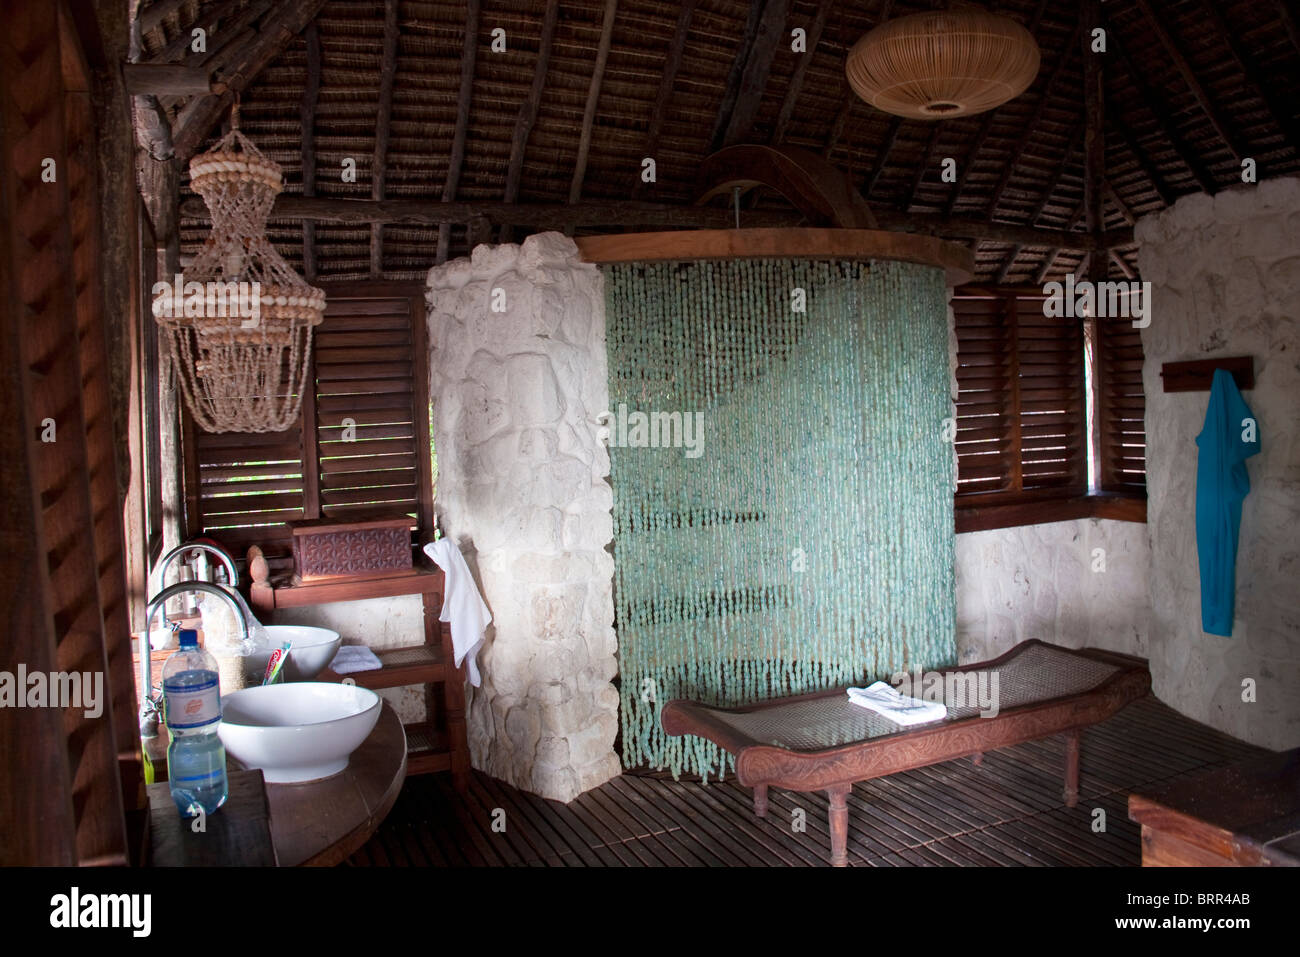 Bathroom Interior With Beaded Shower Curtain At Mnemba Lodge